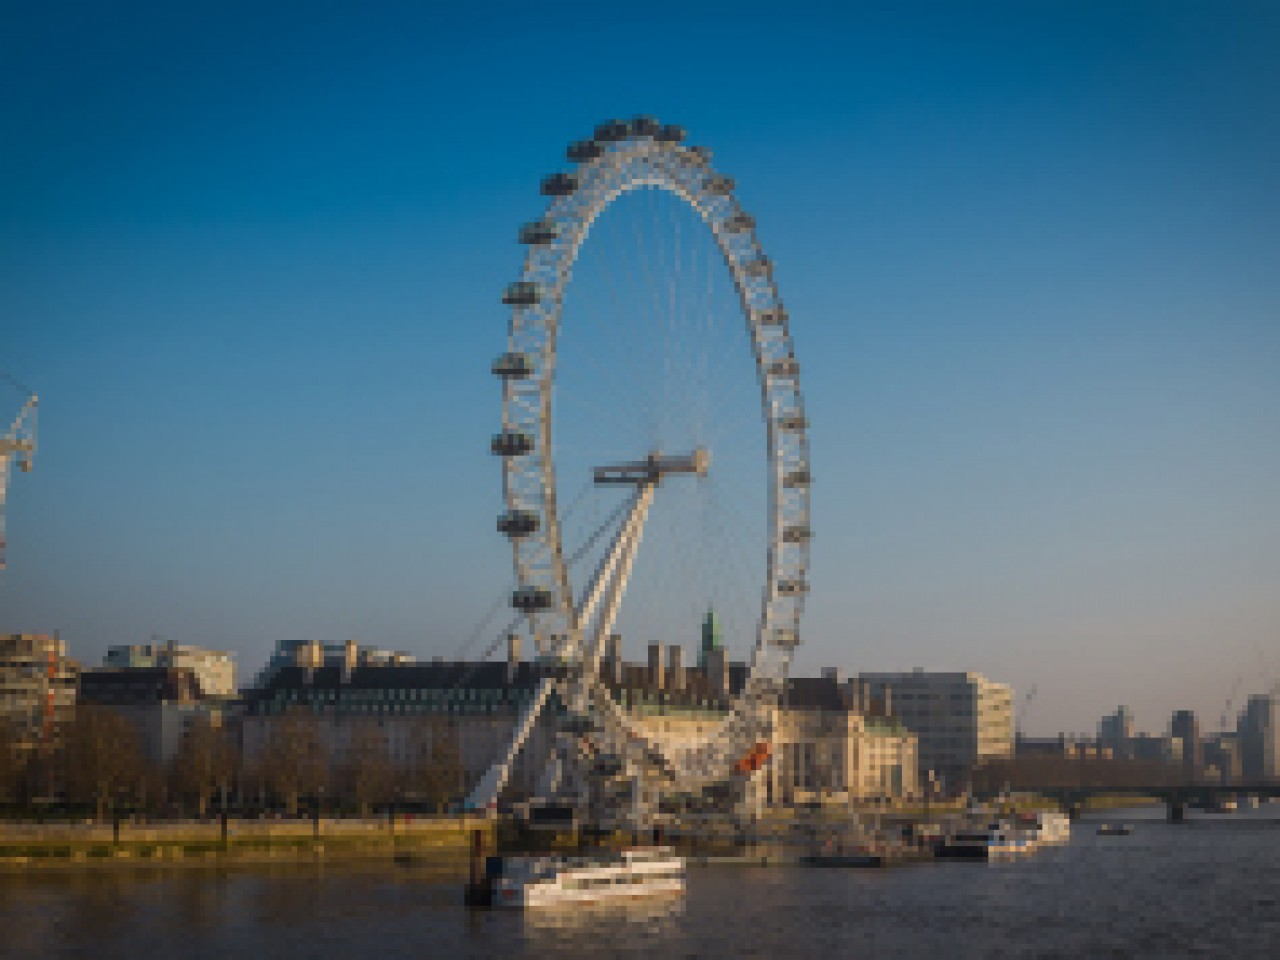 The London Eye Experience + Hotel Hotel & Ticket packages